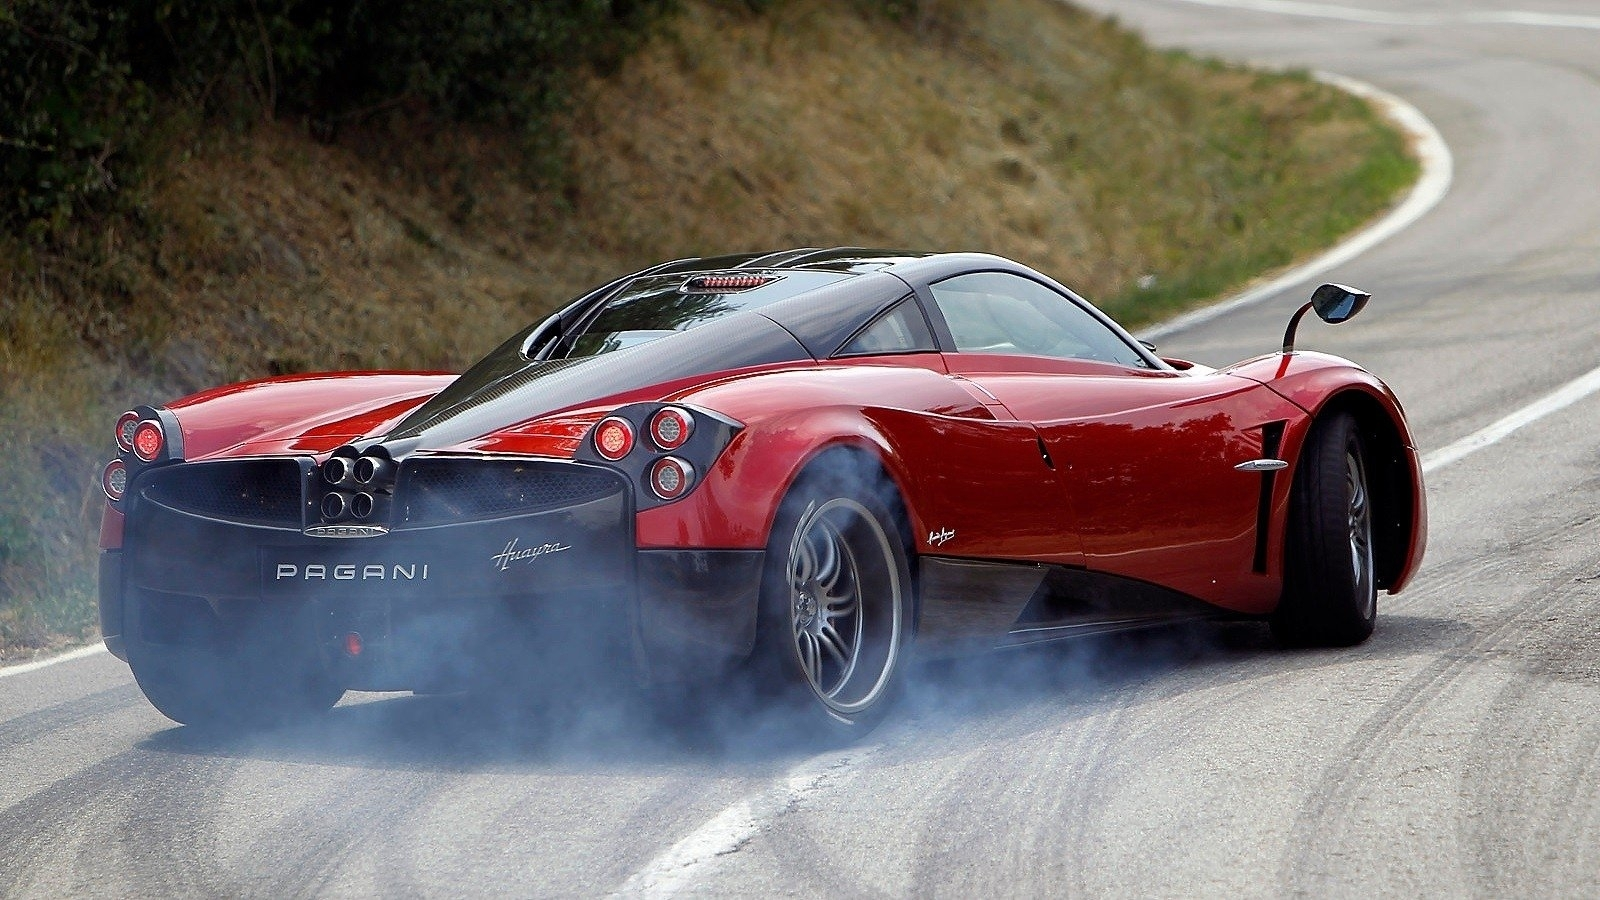 121 pagani huayra hd wallpapers | background images - wallpaper abyss